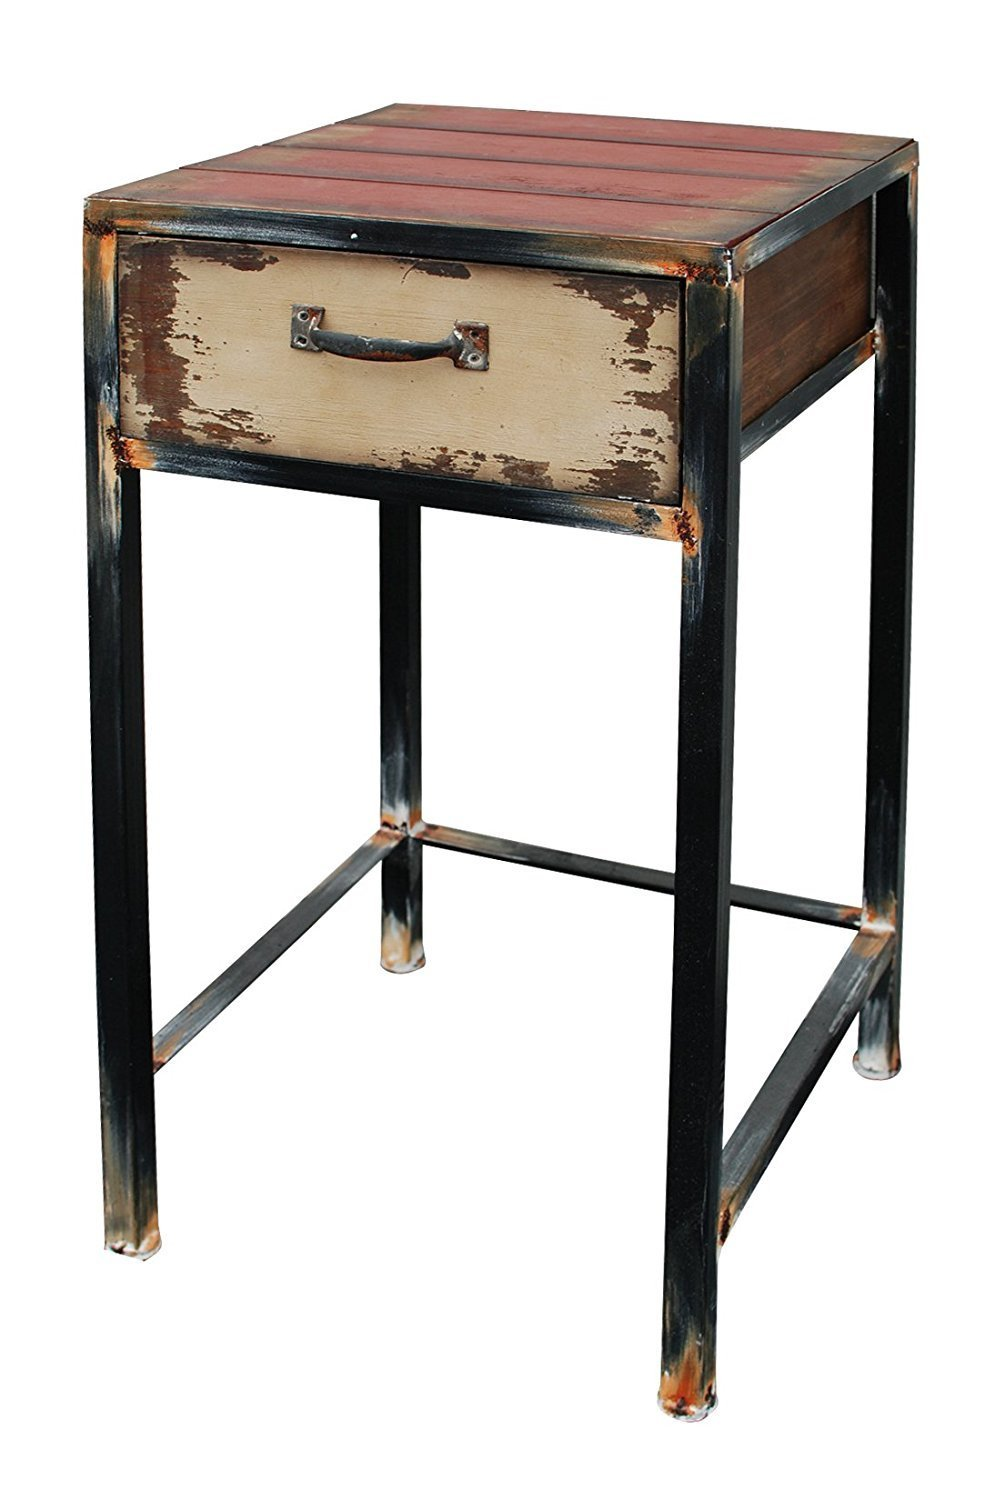 wood night stand with drawer multi purpose antique accent table metal and wooden storage baskets small round marble patio dining set bench nested furniture wellington garage